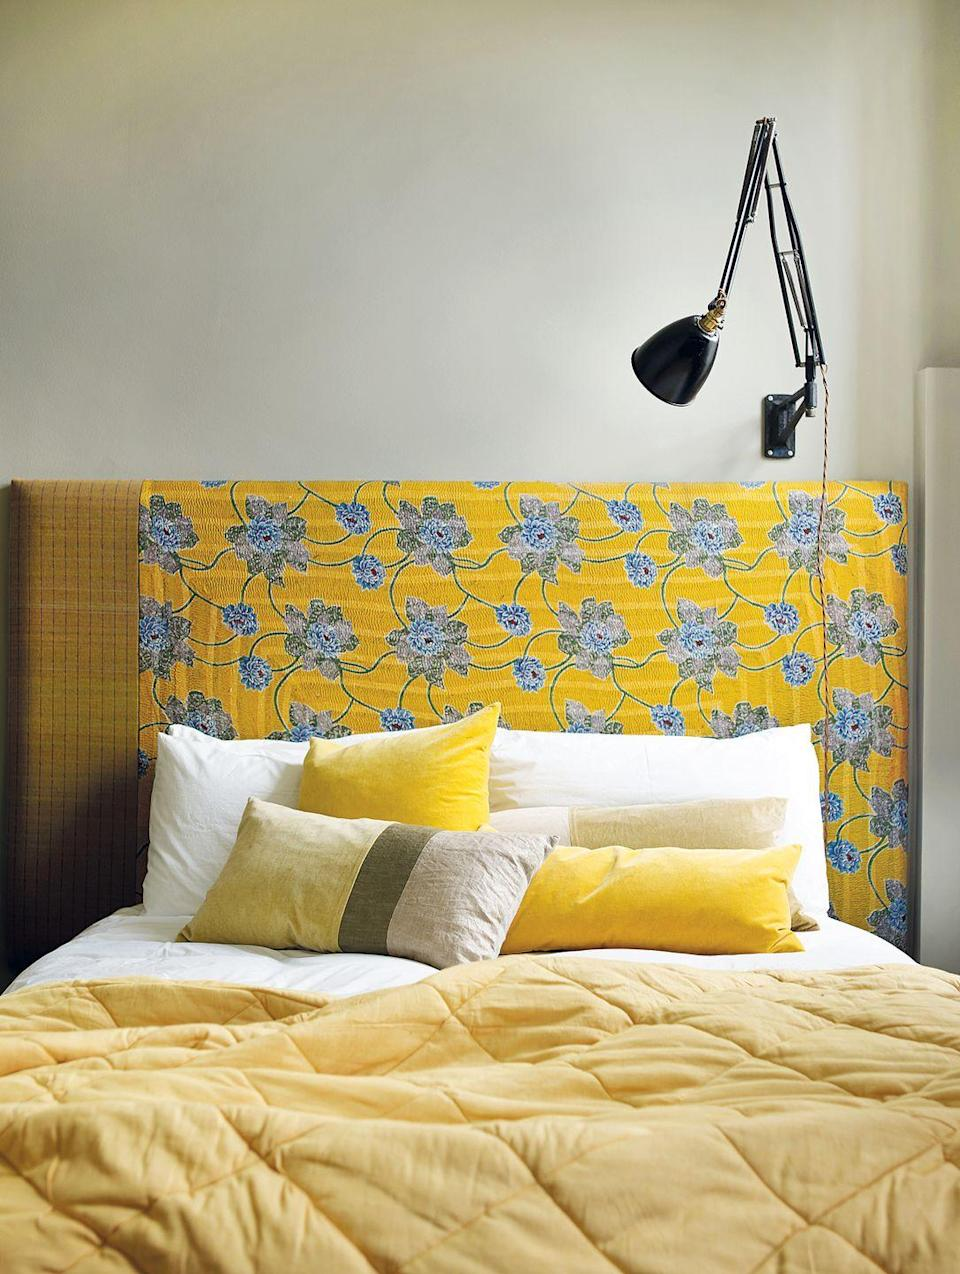 <p>Uplift your design scheme with an eye-catching floral headboard. Choosing a vibrant hue, like yellow, can act as the perfect balance to neutral-colored walls. </p>